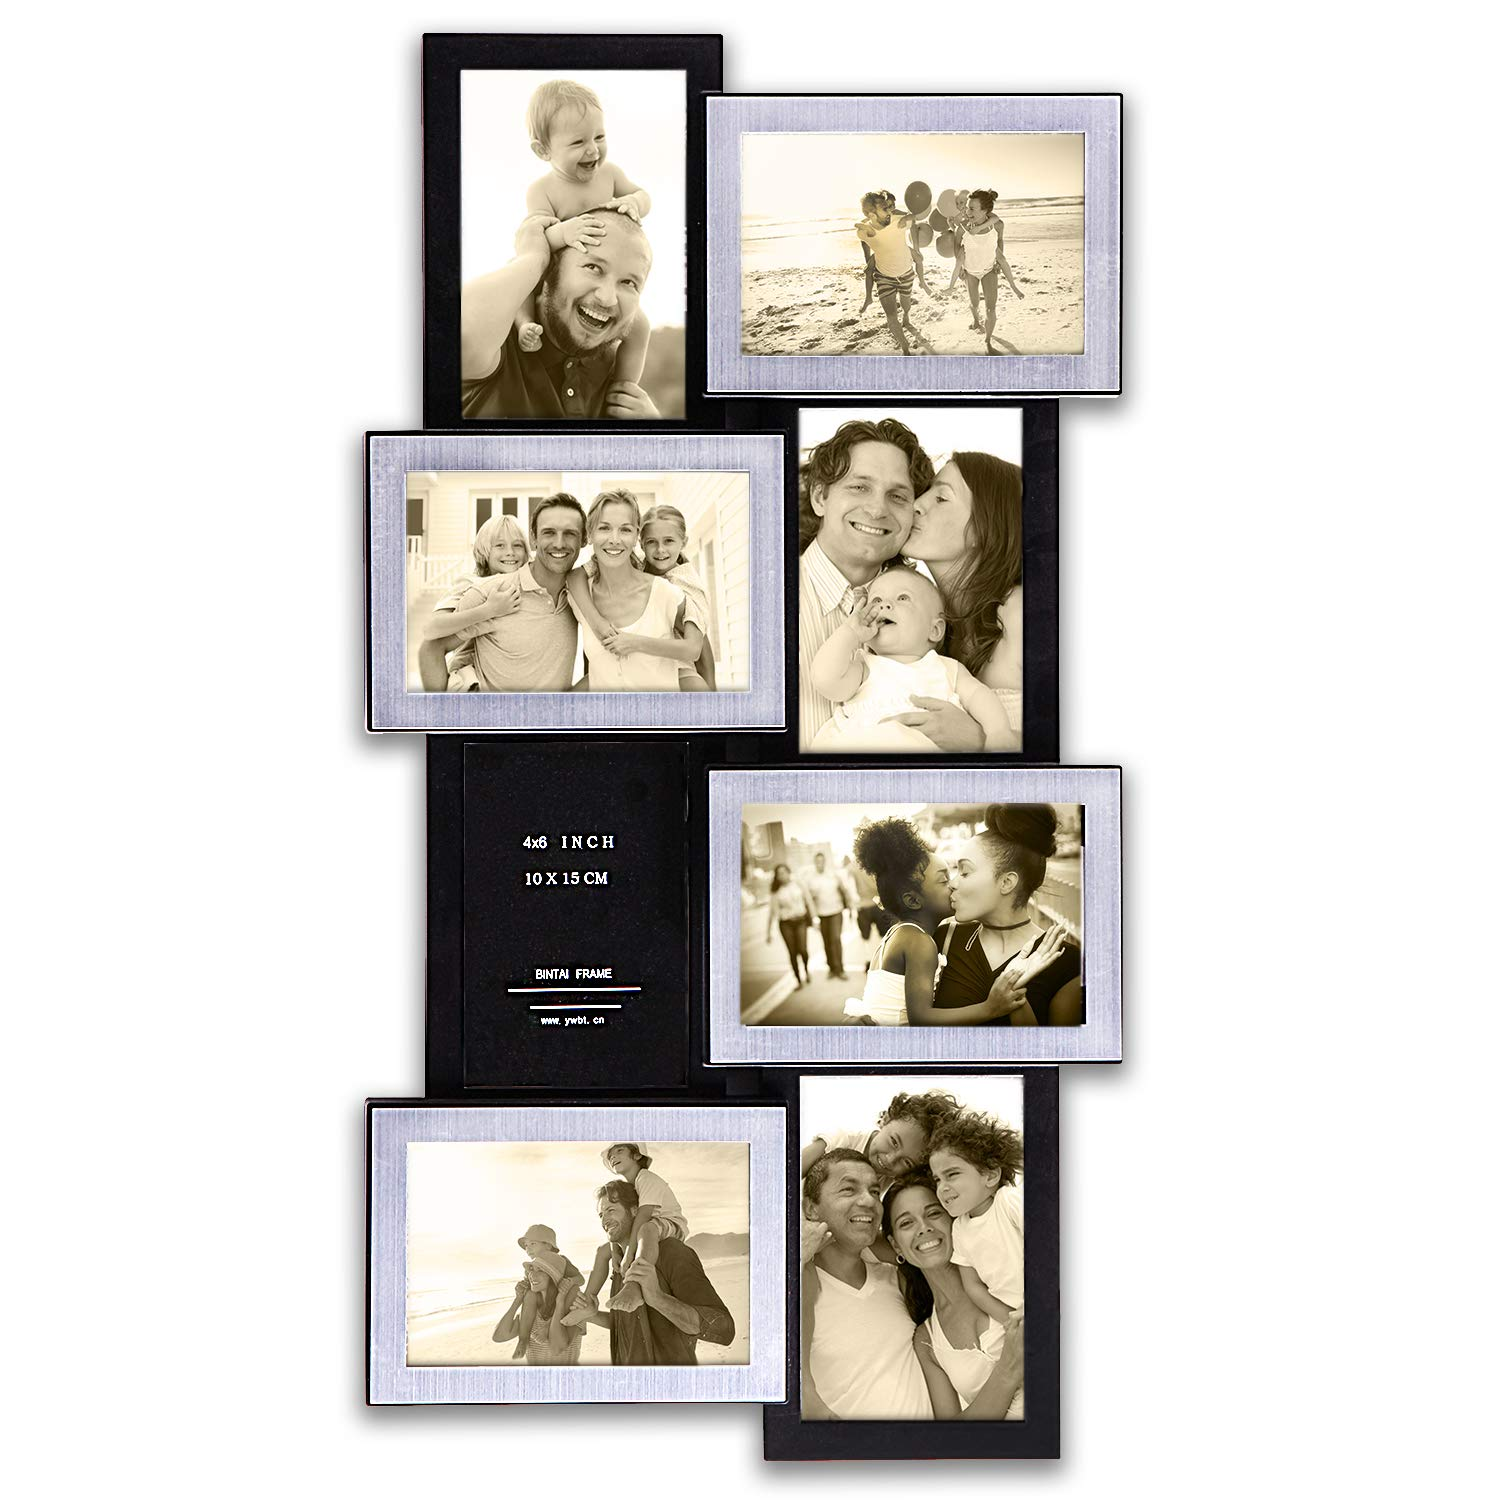 Hello Laura Gallery Style Photo Frame 8 Units Wall Hanging Picture Frame 33 by 13.5 inch Wall Hanging Photo Frame 4 x 6 inch Photo Sockets x 10-10 Opening Black Frame Edge